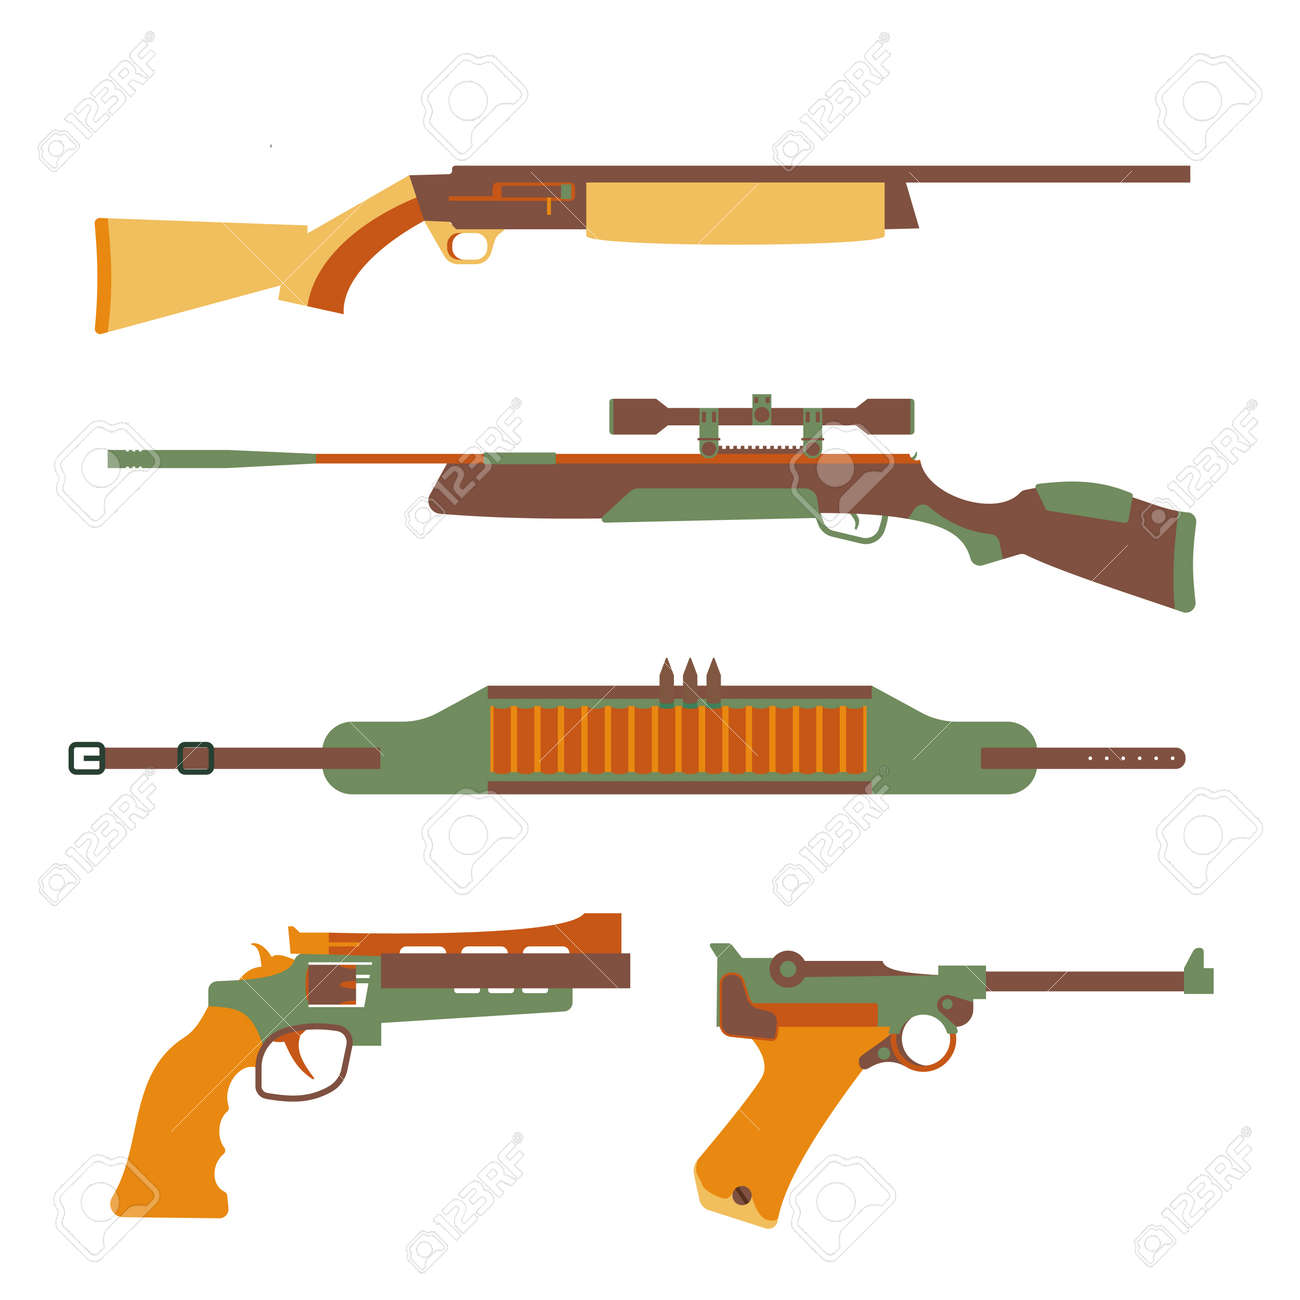 Firearms set design flat. Military weapon and gun, pistol for defense, vector illustration - 59302995